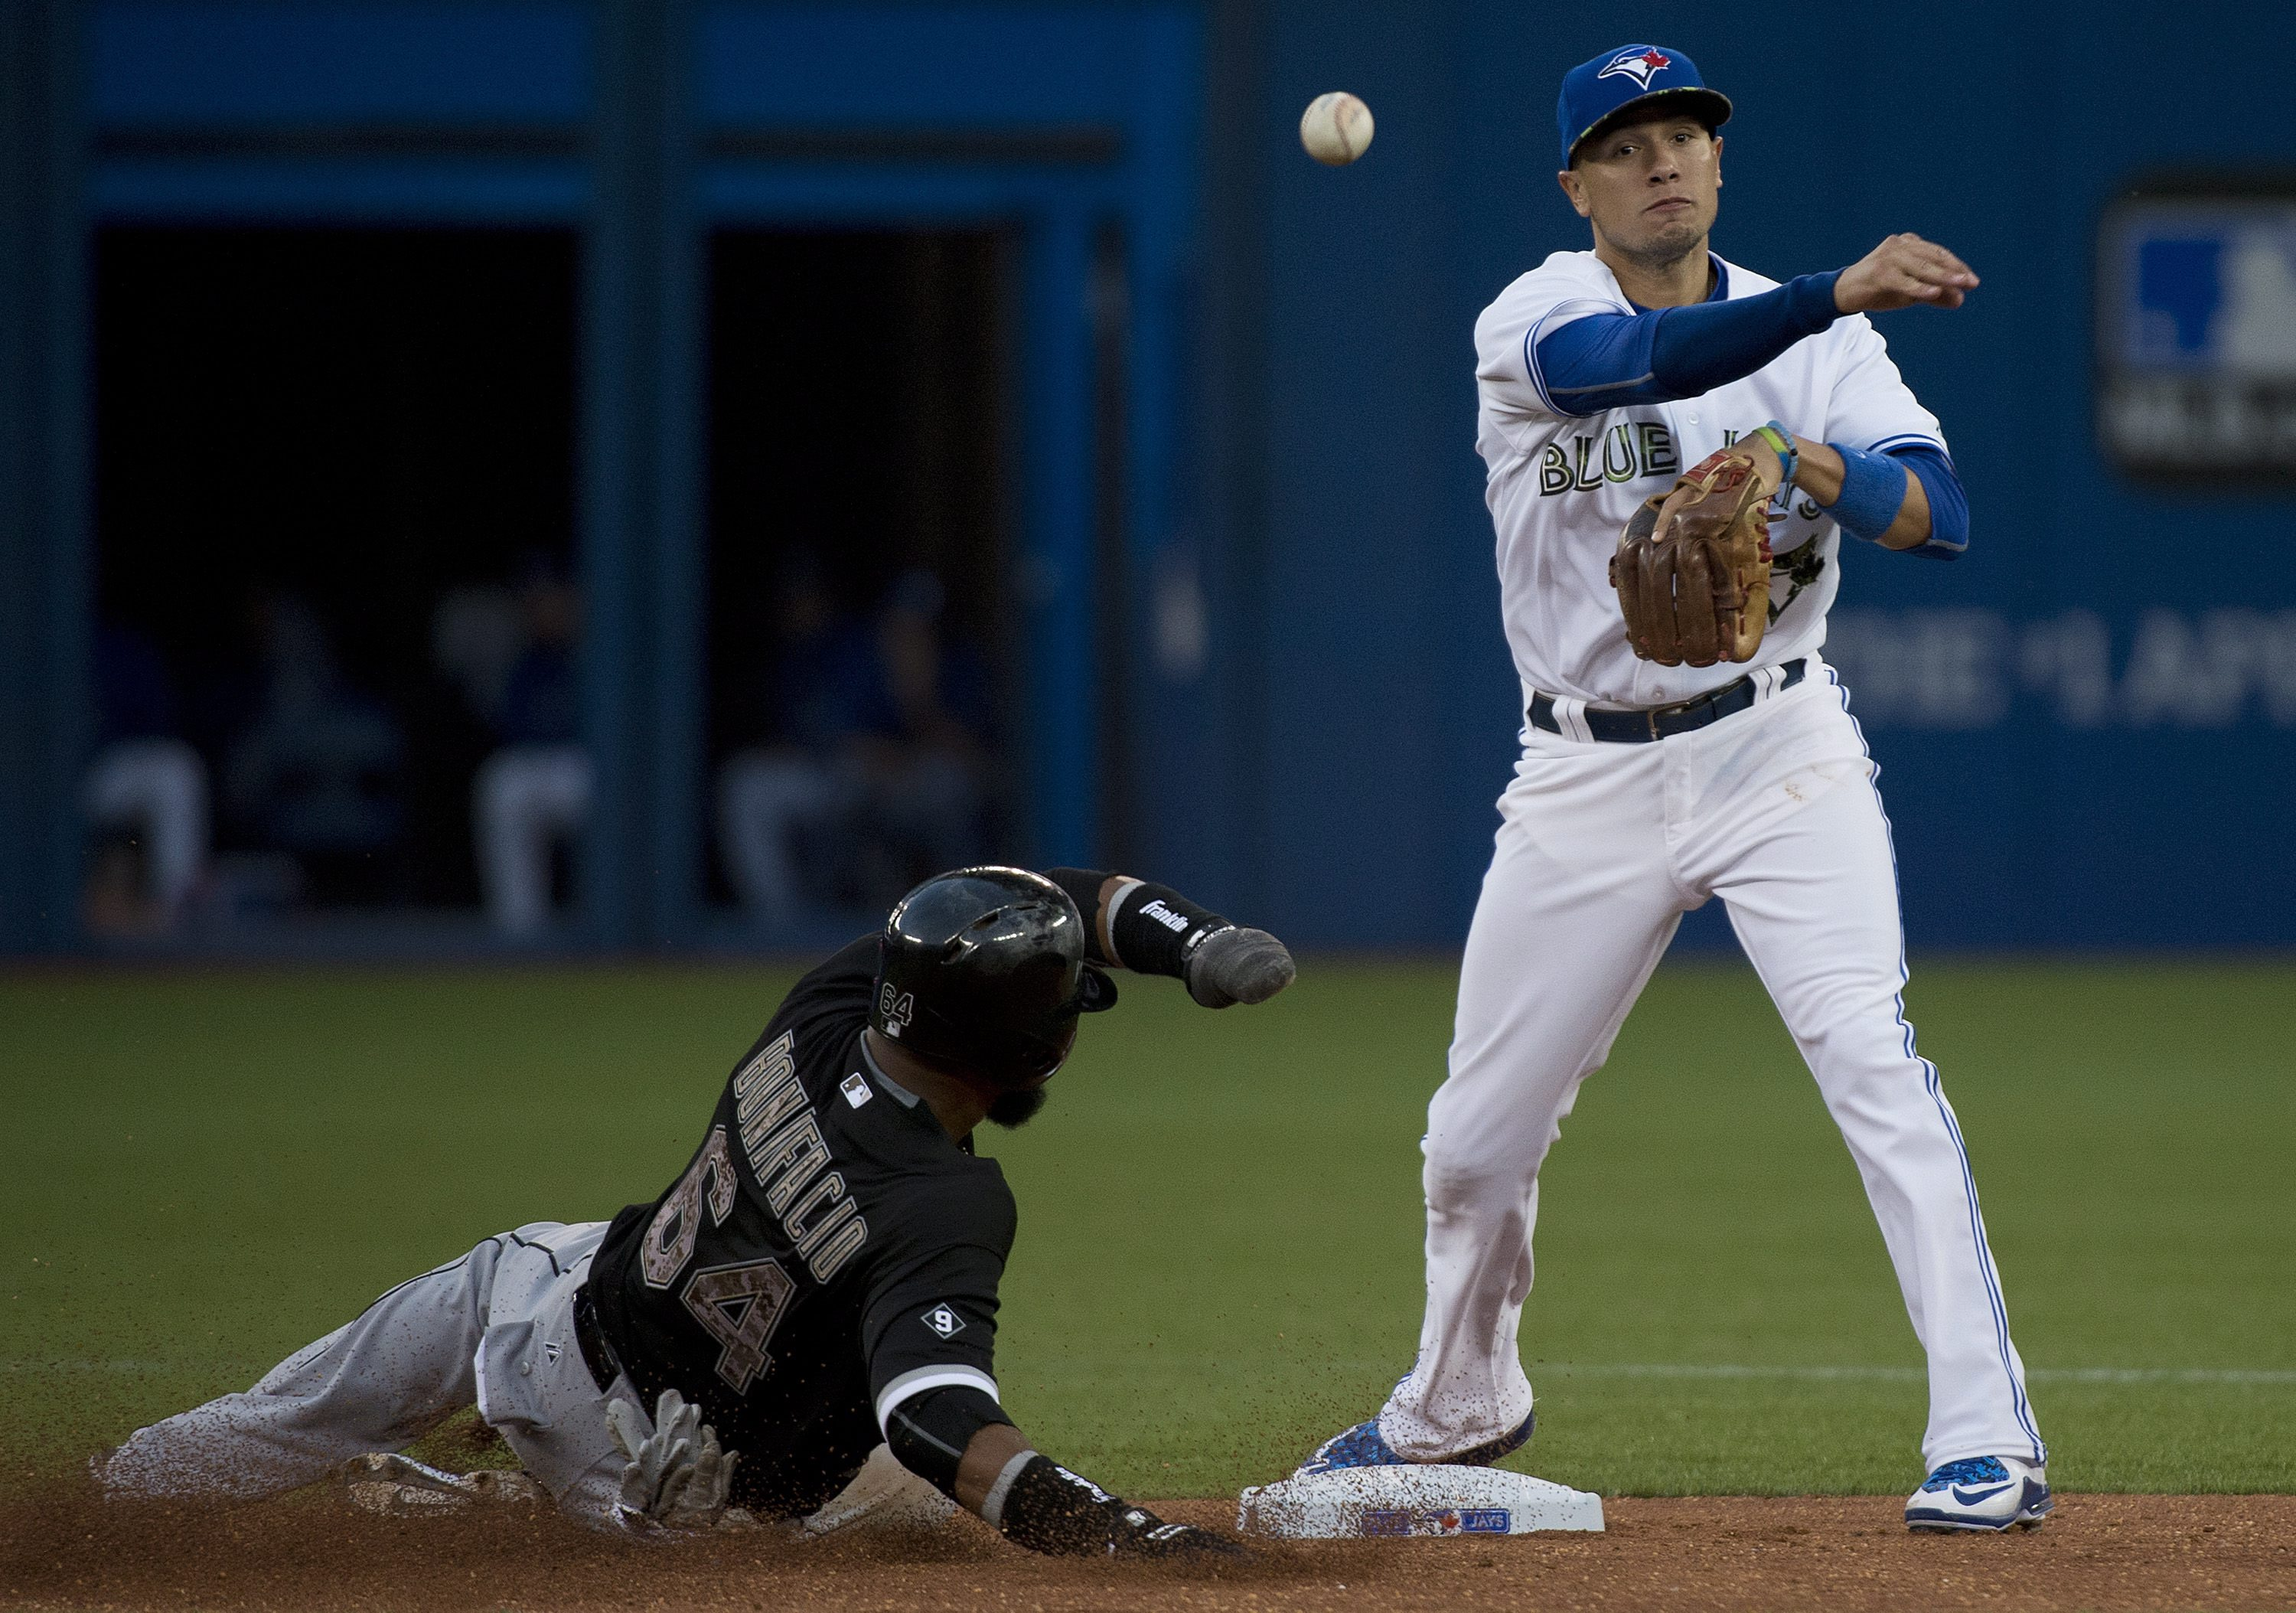 Toronto Blue Jays second baseman Ryan Goins, right, forces out Chicago White Sox's Emilio Bonifacio, left, then turns the double play over to first base to out White Sox's Gordon Beckham during sixth inning of a baseball game in Toronto, Ontario, Monday,